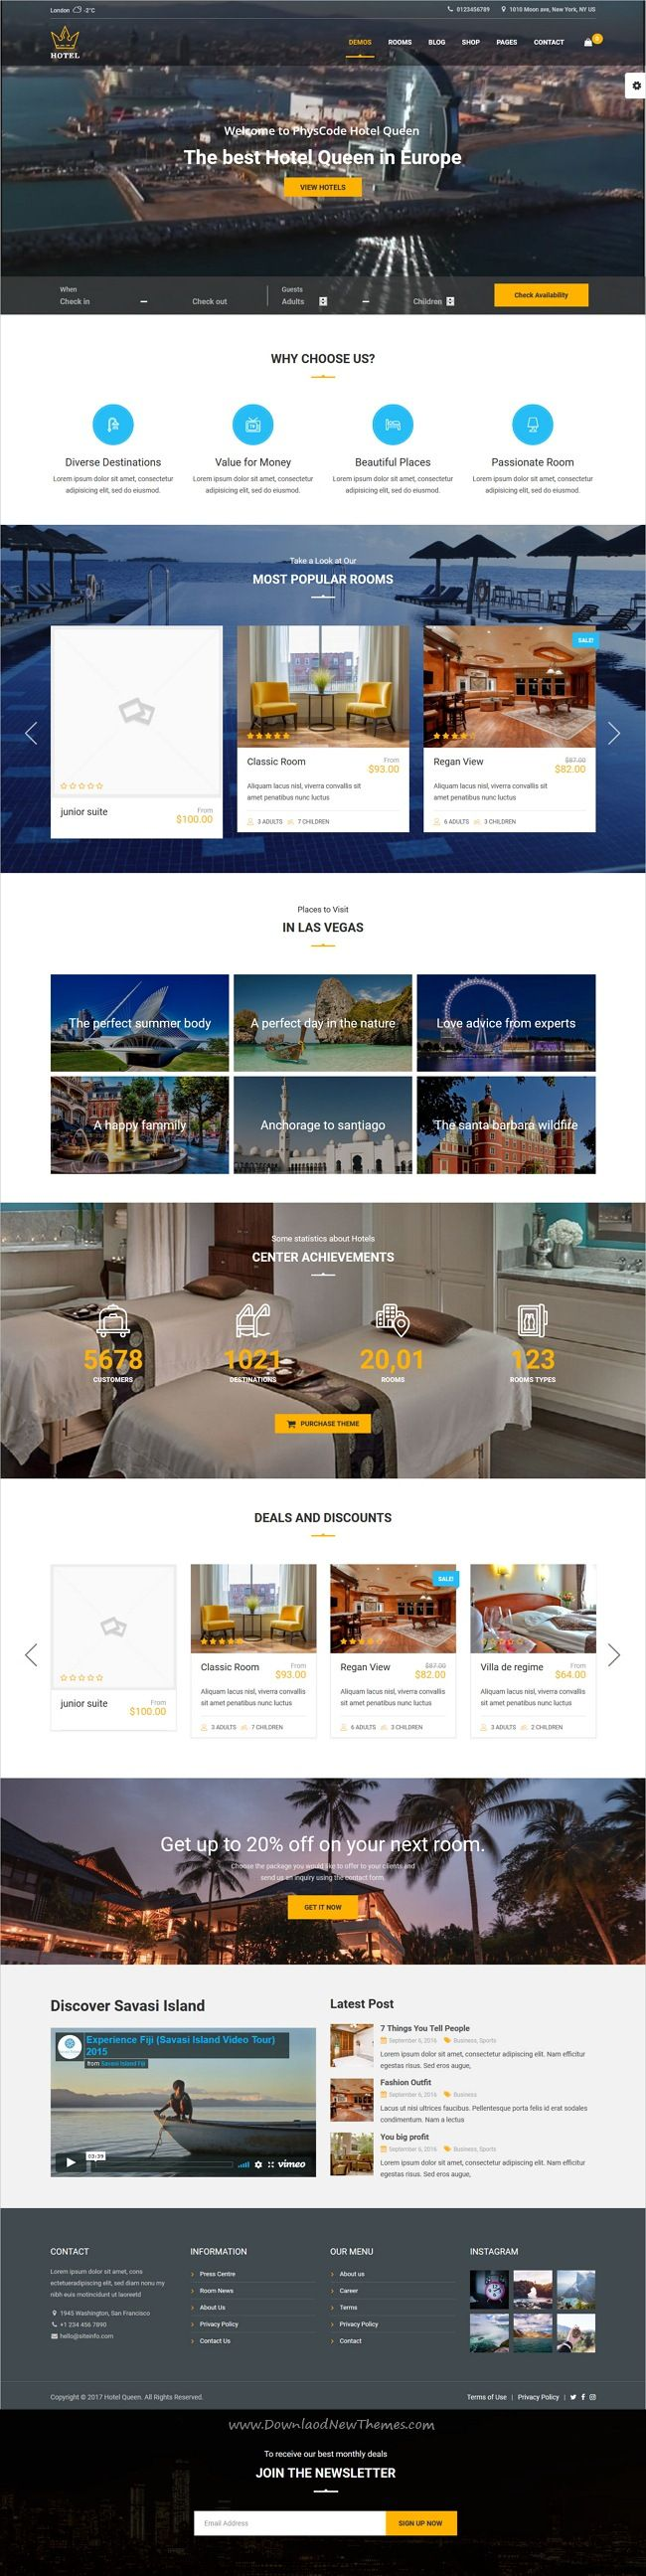 Hotel Queen Is Stylish And Modern Design 4in1 Responsive